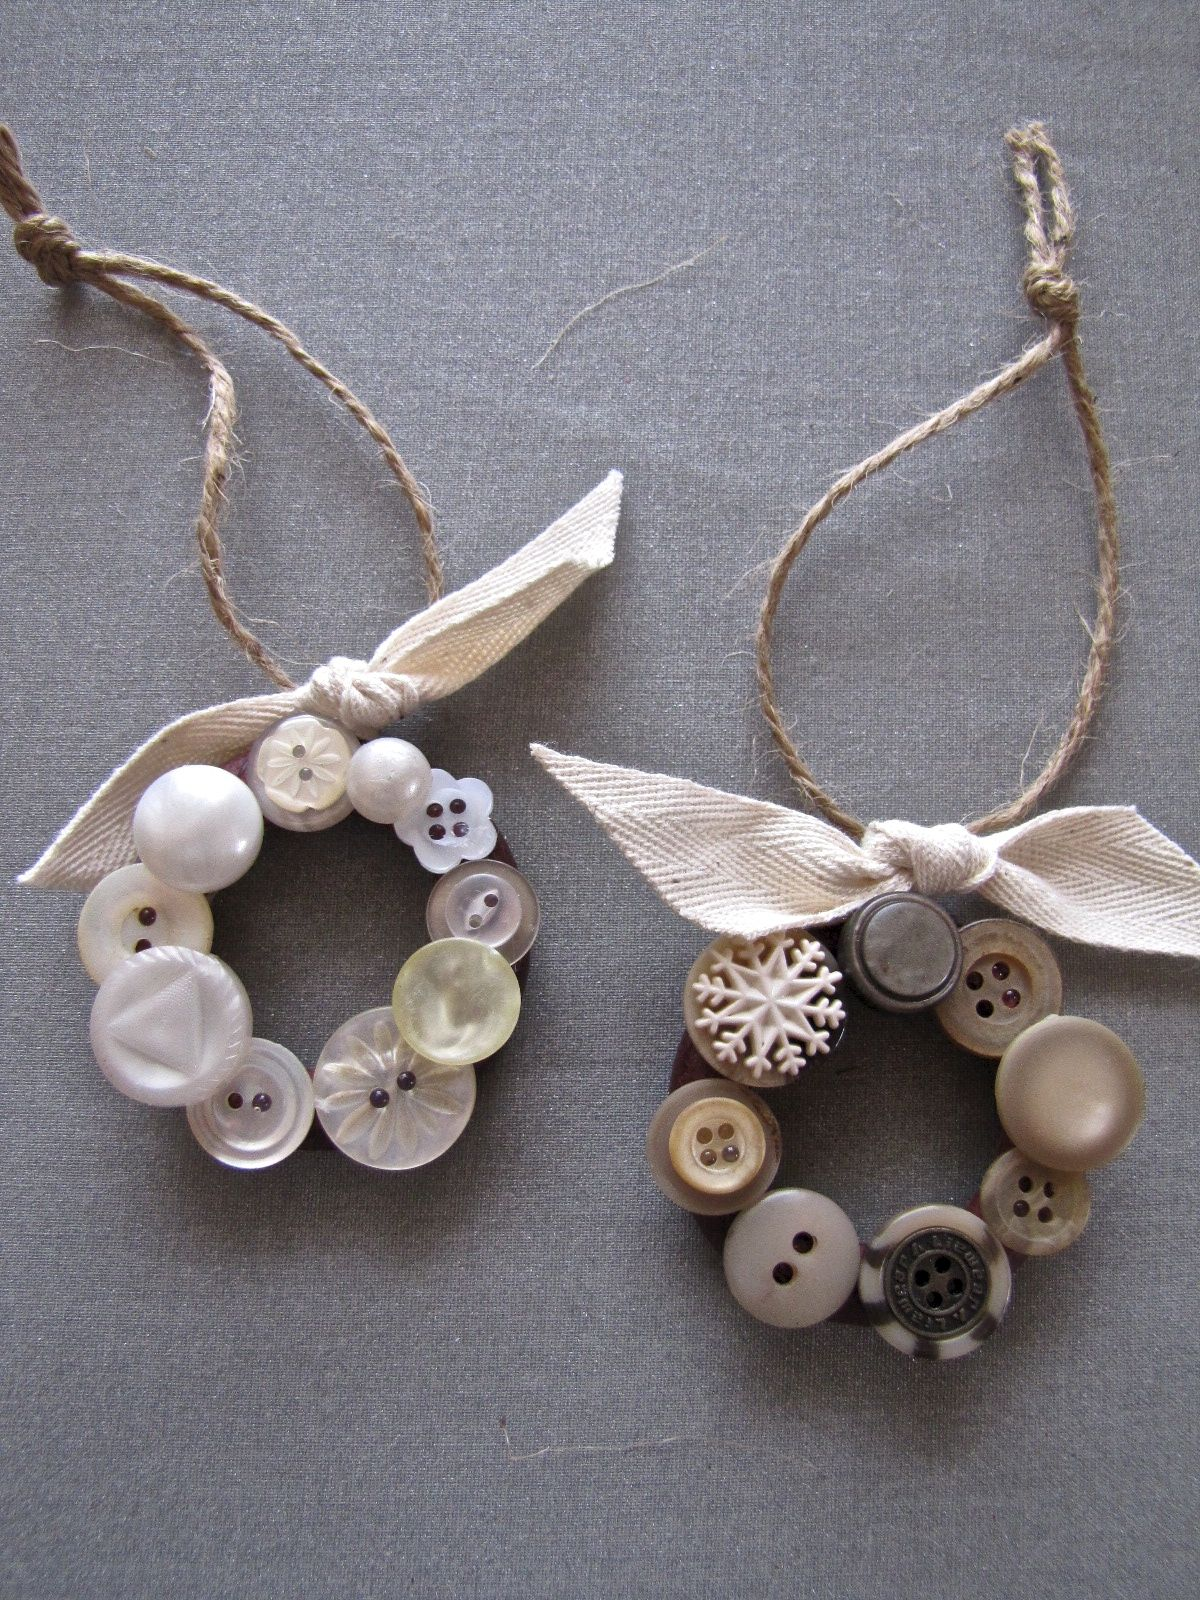 Button Wreath Tree Ornaments Made From Vintage Buttons Glued